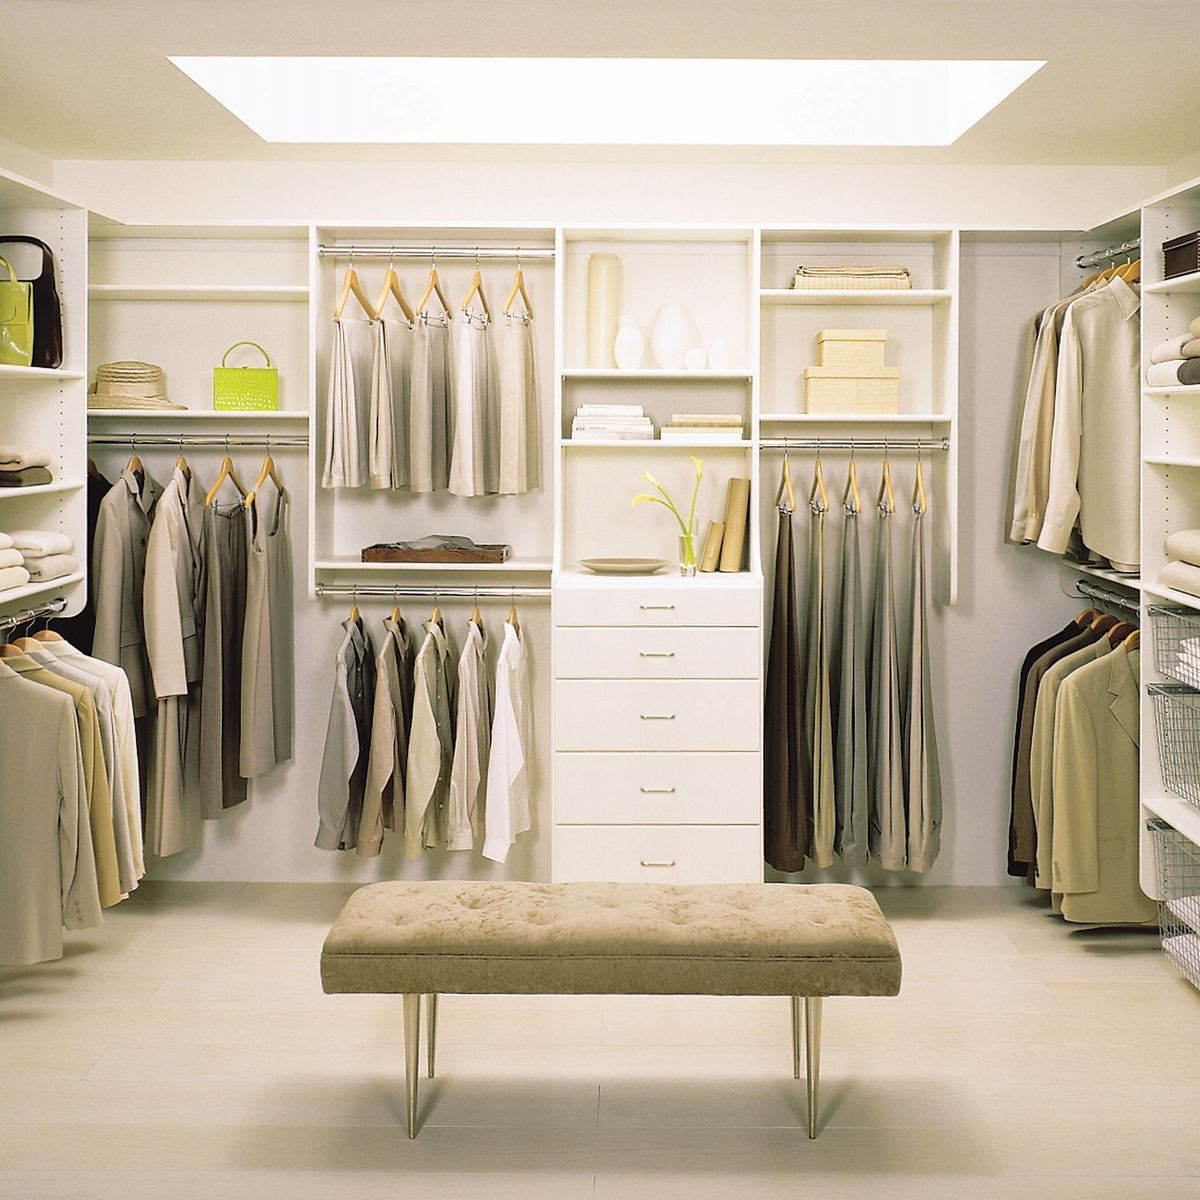 Walk In Closets Ideas Part - 26: Extraordinary Walk In Closet Ideas Effectively Store Your Clothes : Classy  Modern Minimalist White Walk In